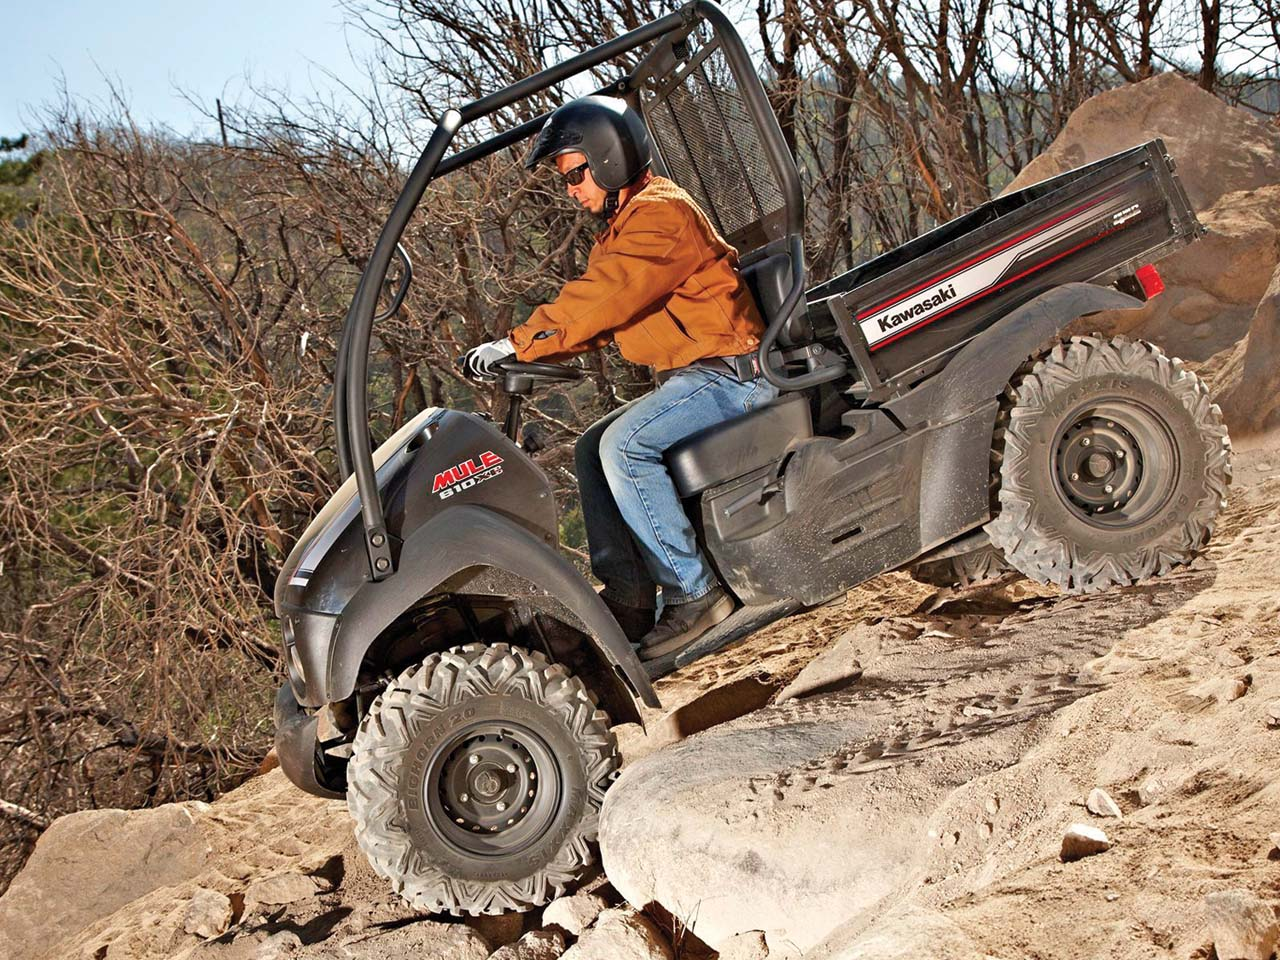 kaw trails! new machines - new ride area | atv illustrated